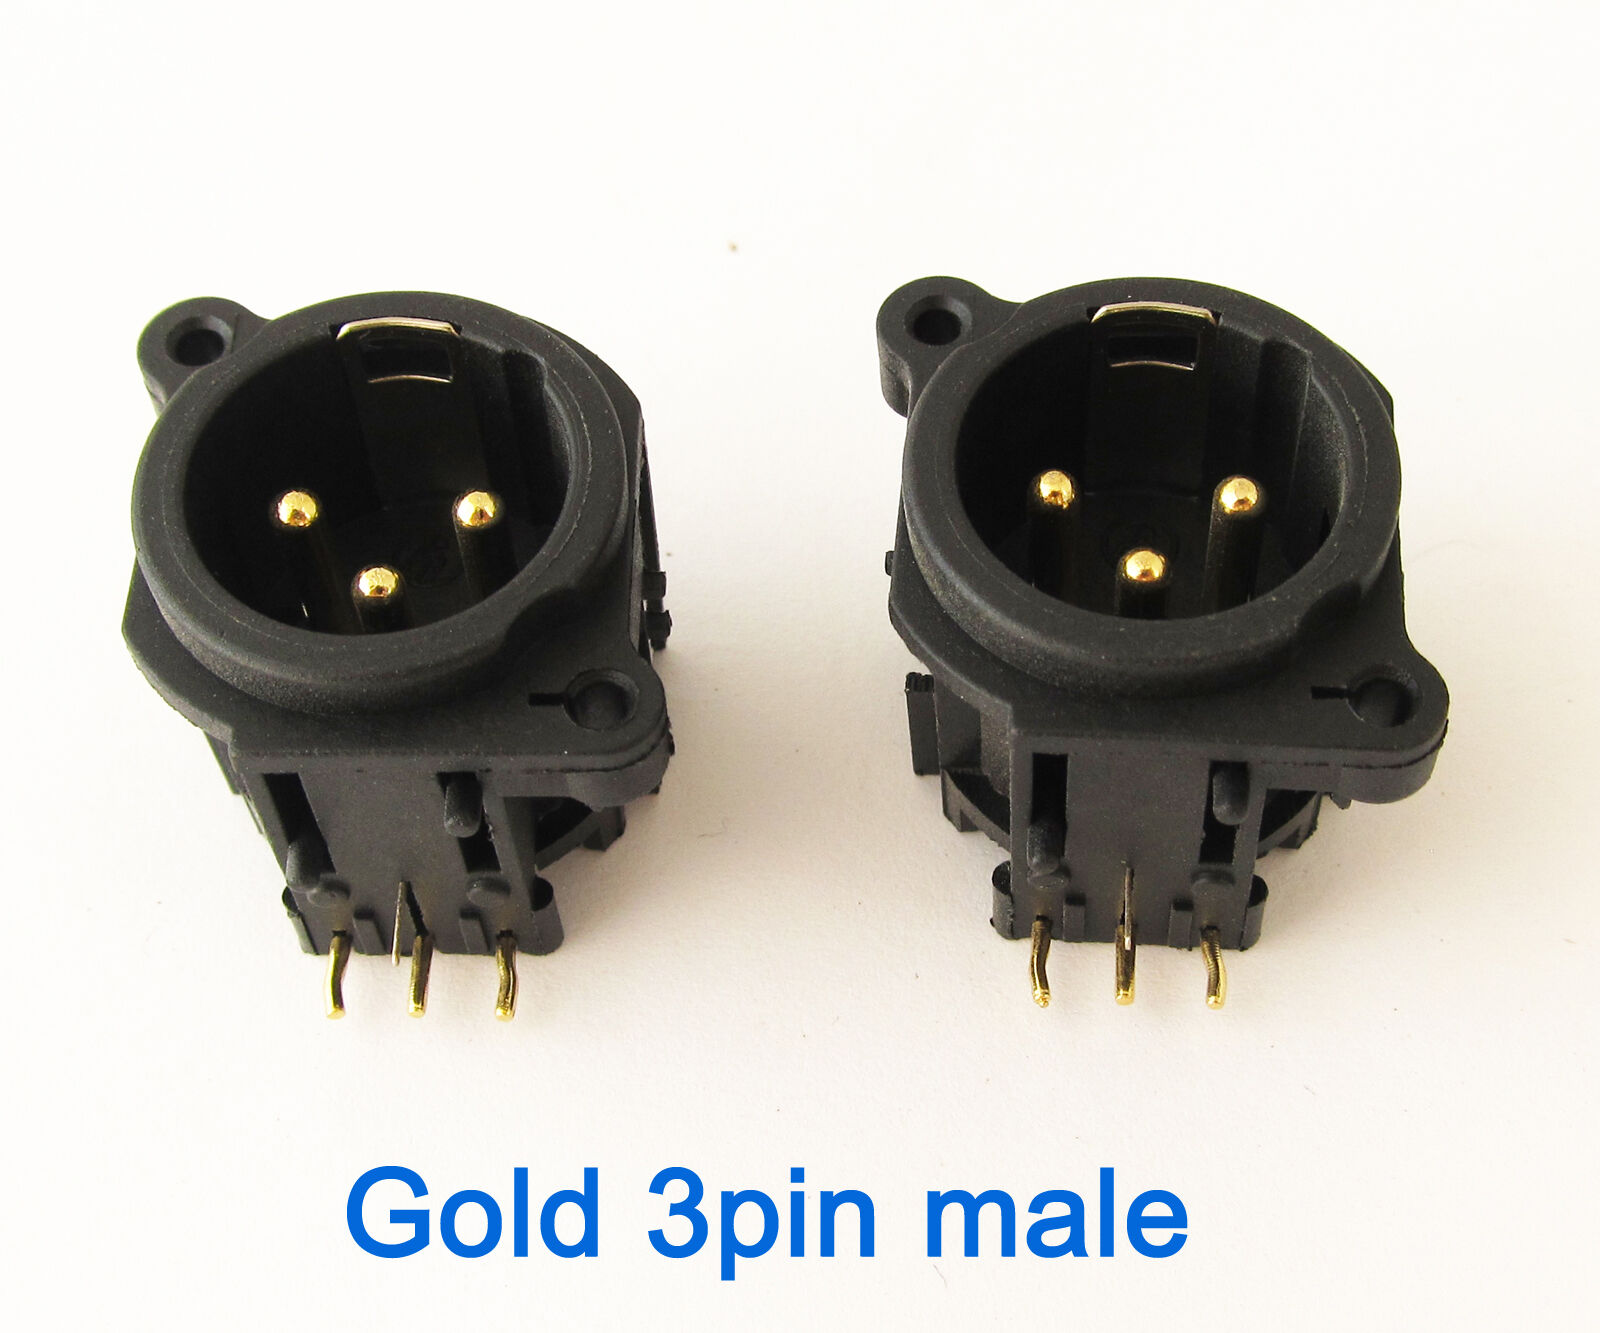 50x Microphone XLR 3pin Male Gold Pins Panel Mount Chassis PCB Socket Connector